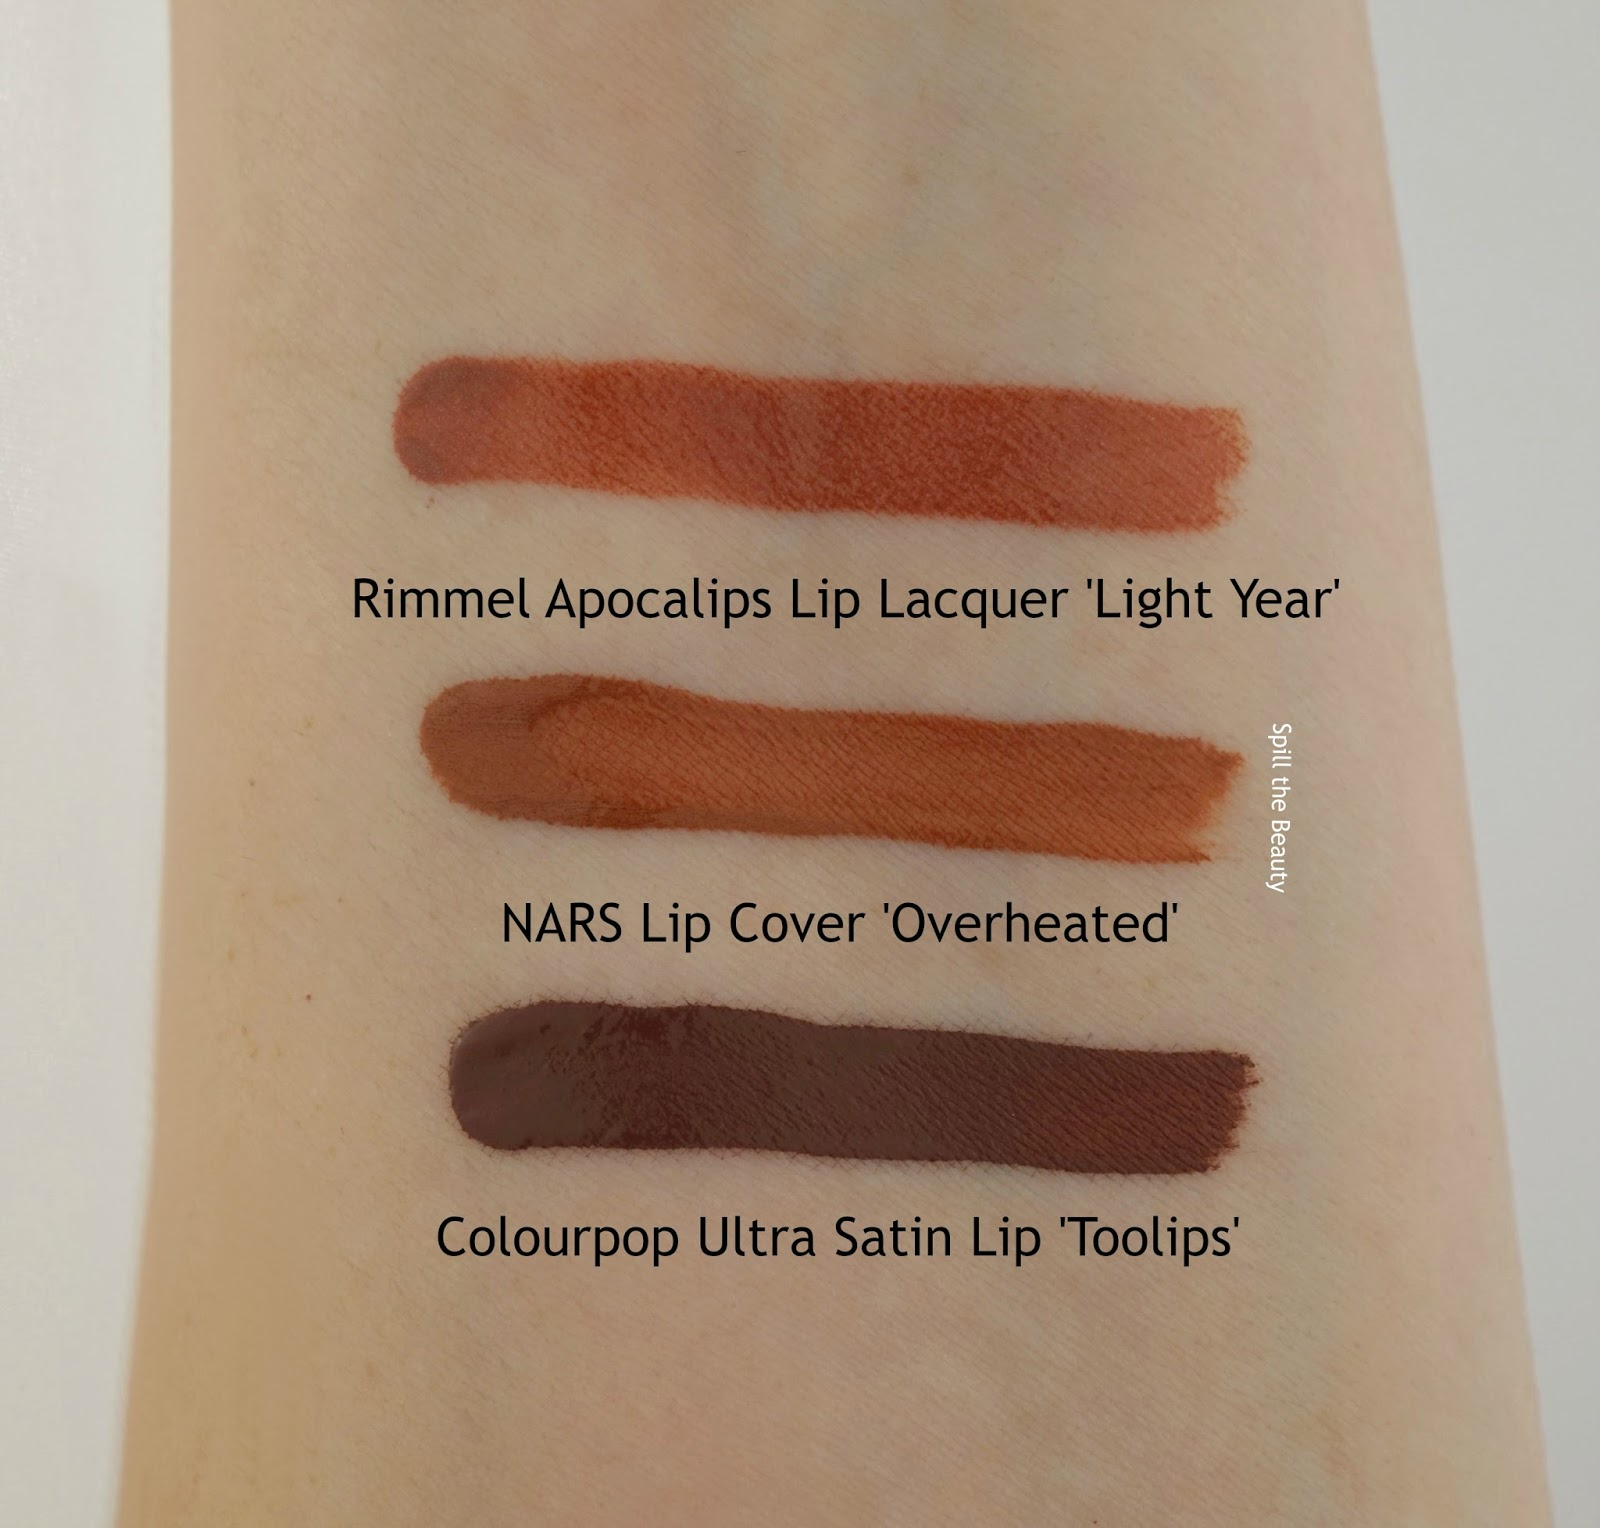 NARS Under Cover Summer 2016 Overheated Lip Cover review swatches comparison drugstore dupe colourpop rimmel